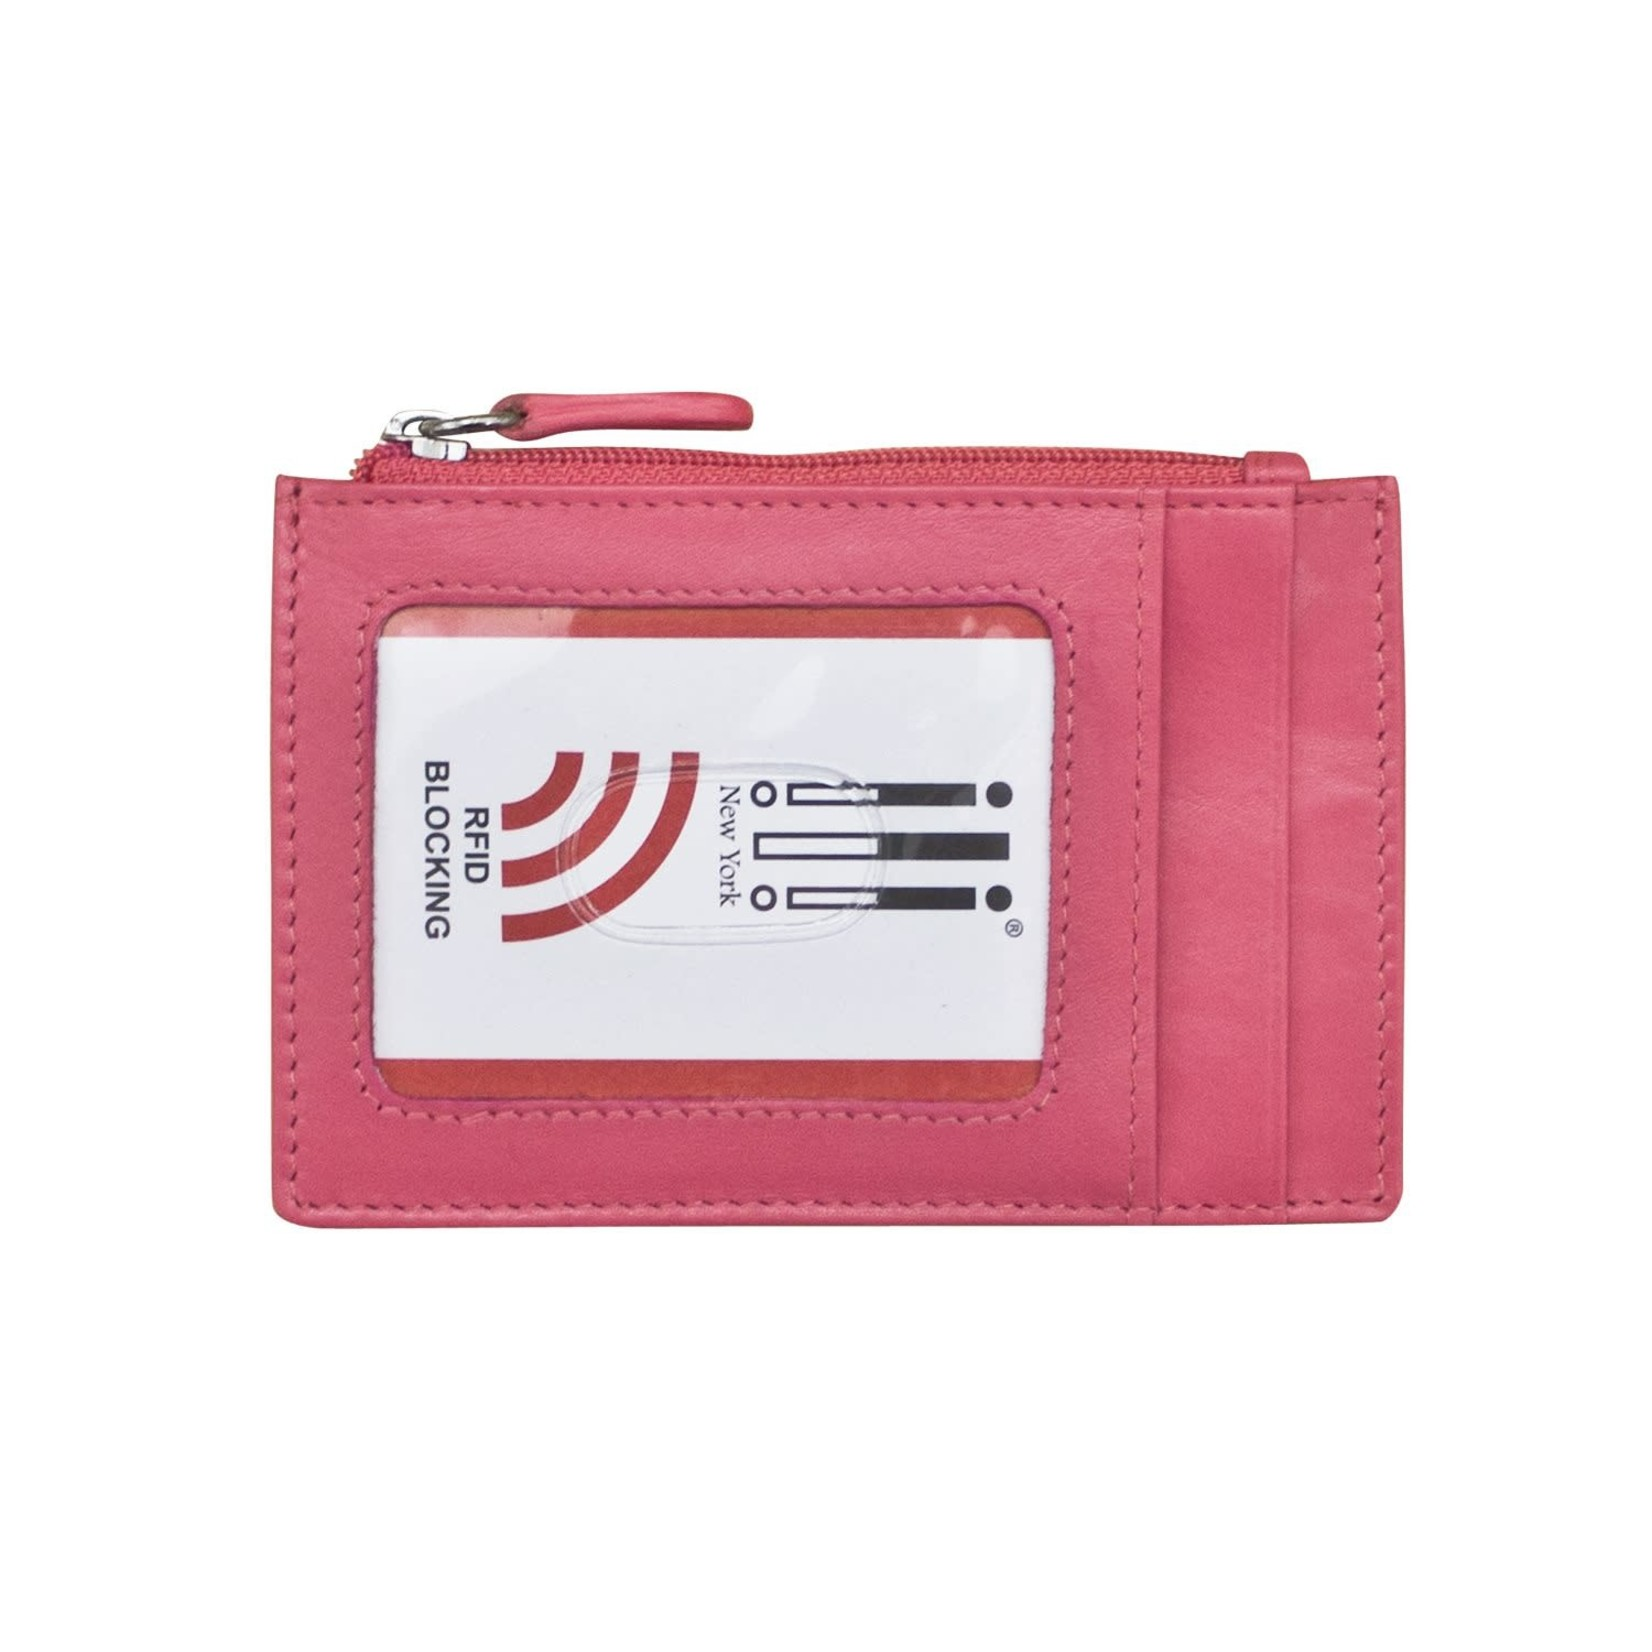 Leather Handbags and Accessories 7416 Hot Pink - RFID Card Holder